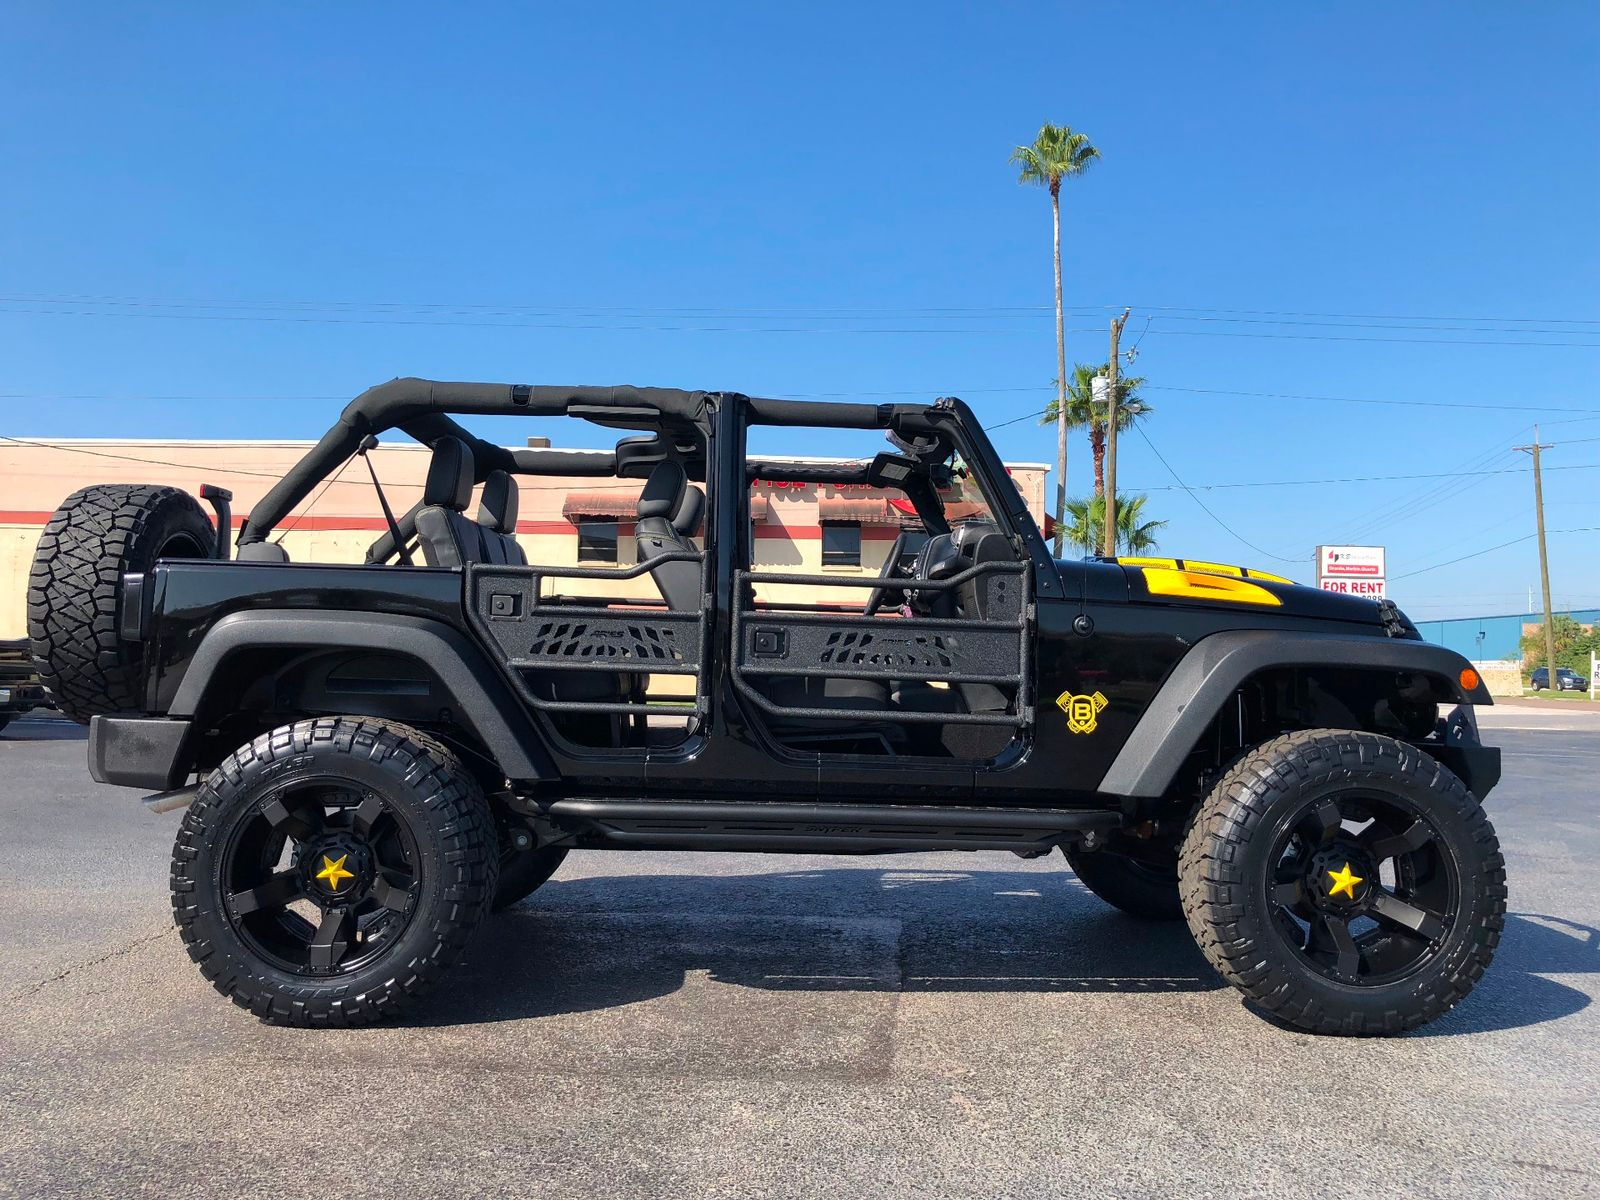 2018 Jeep Rubicon Interior >> 2018 Jeep Wrangler JK Unlimited RUBICON CUSTOM LIFTED 4x4 Florida Bayshore Automotive